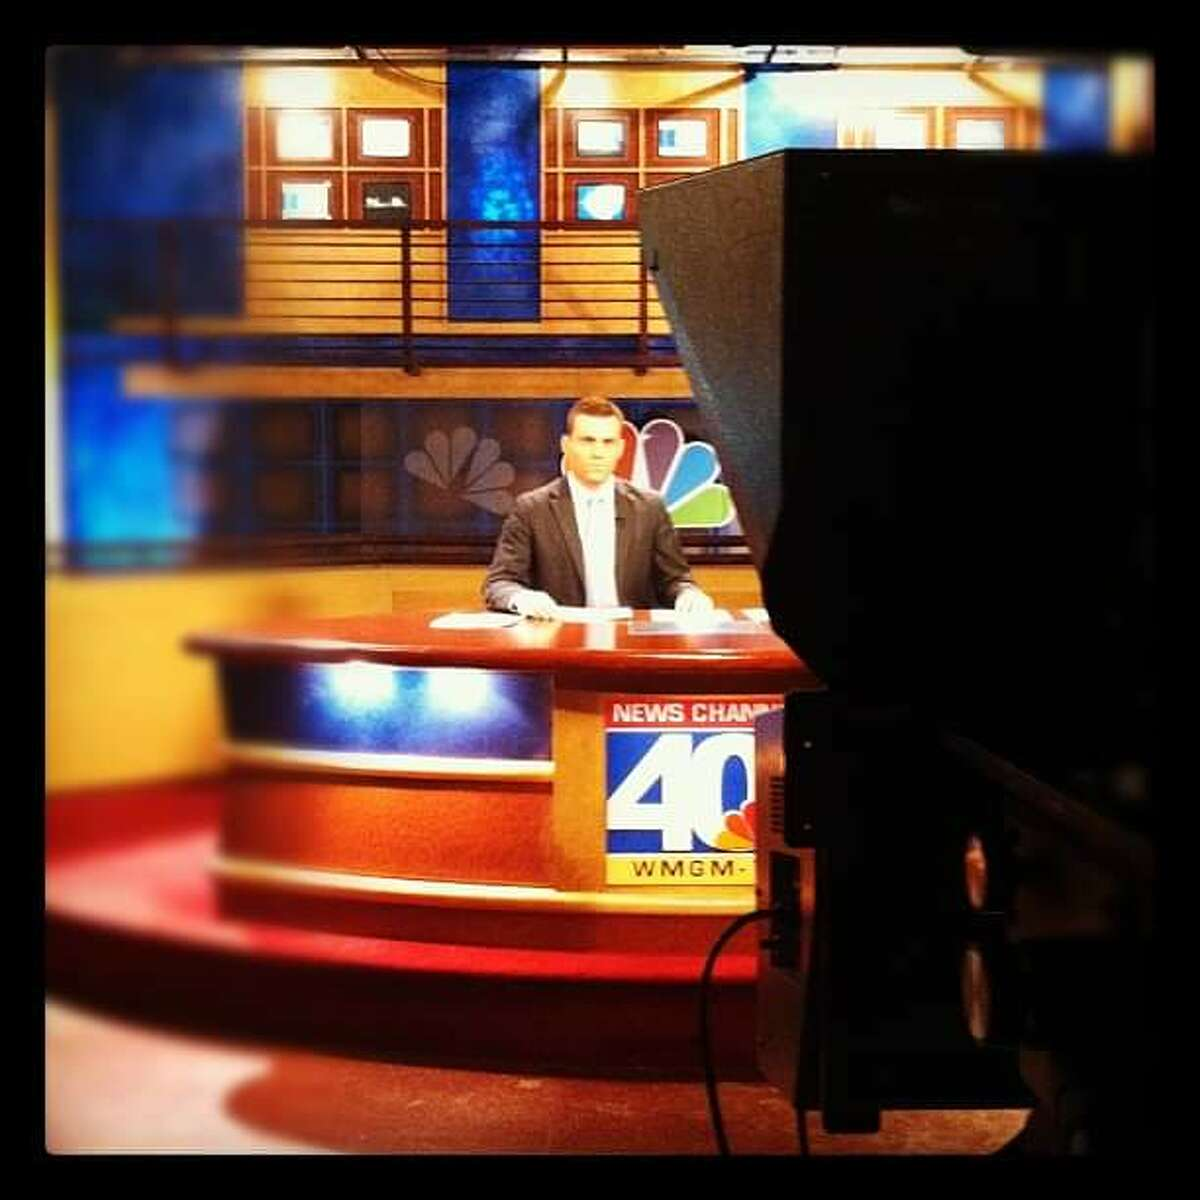 2. Trial by Hurricane. My first big story was covering Hurricane Sandy while at (the sadly, now defunct) WMGM-TV in Atlantic City. I was actually filling in on the anchor desk as the storm moved in. The stories of triumph from residents in the aftermath will always stick with me.